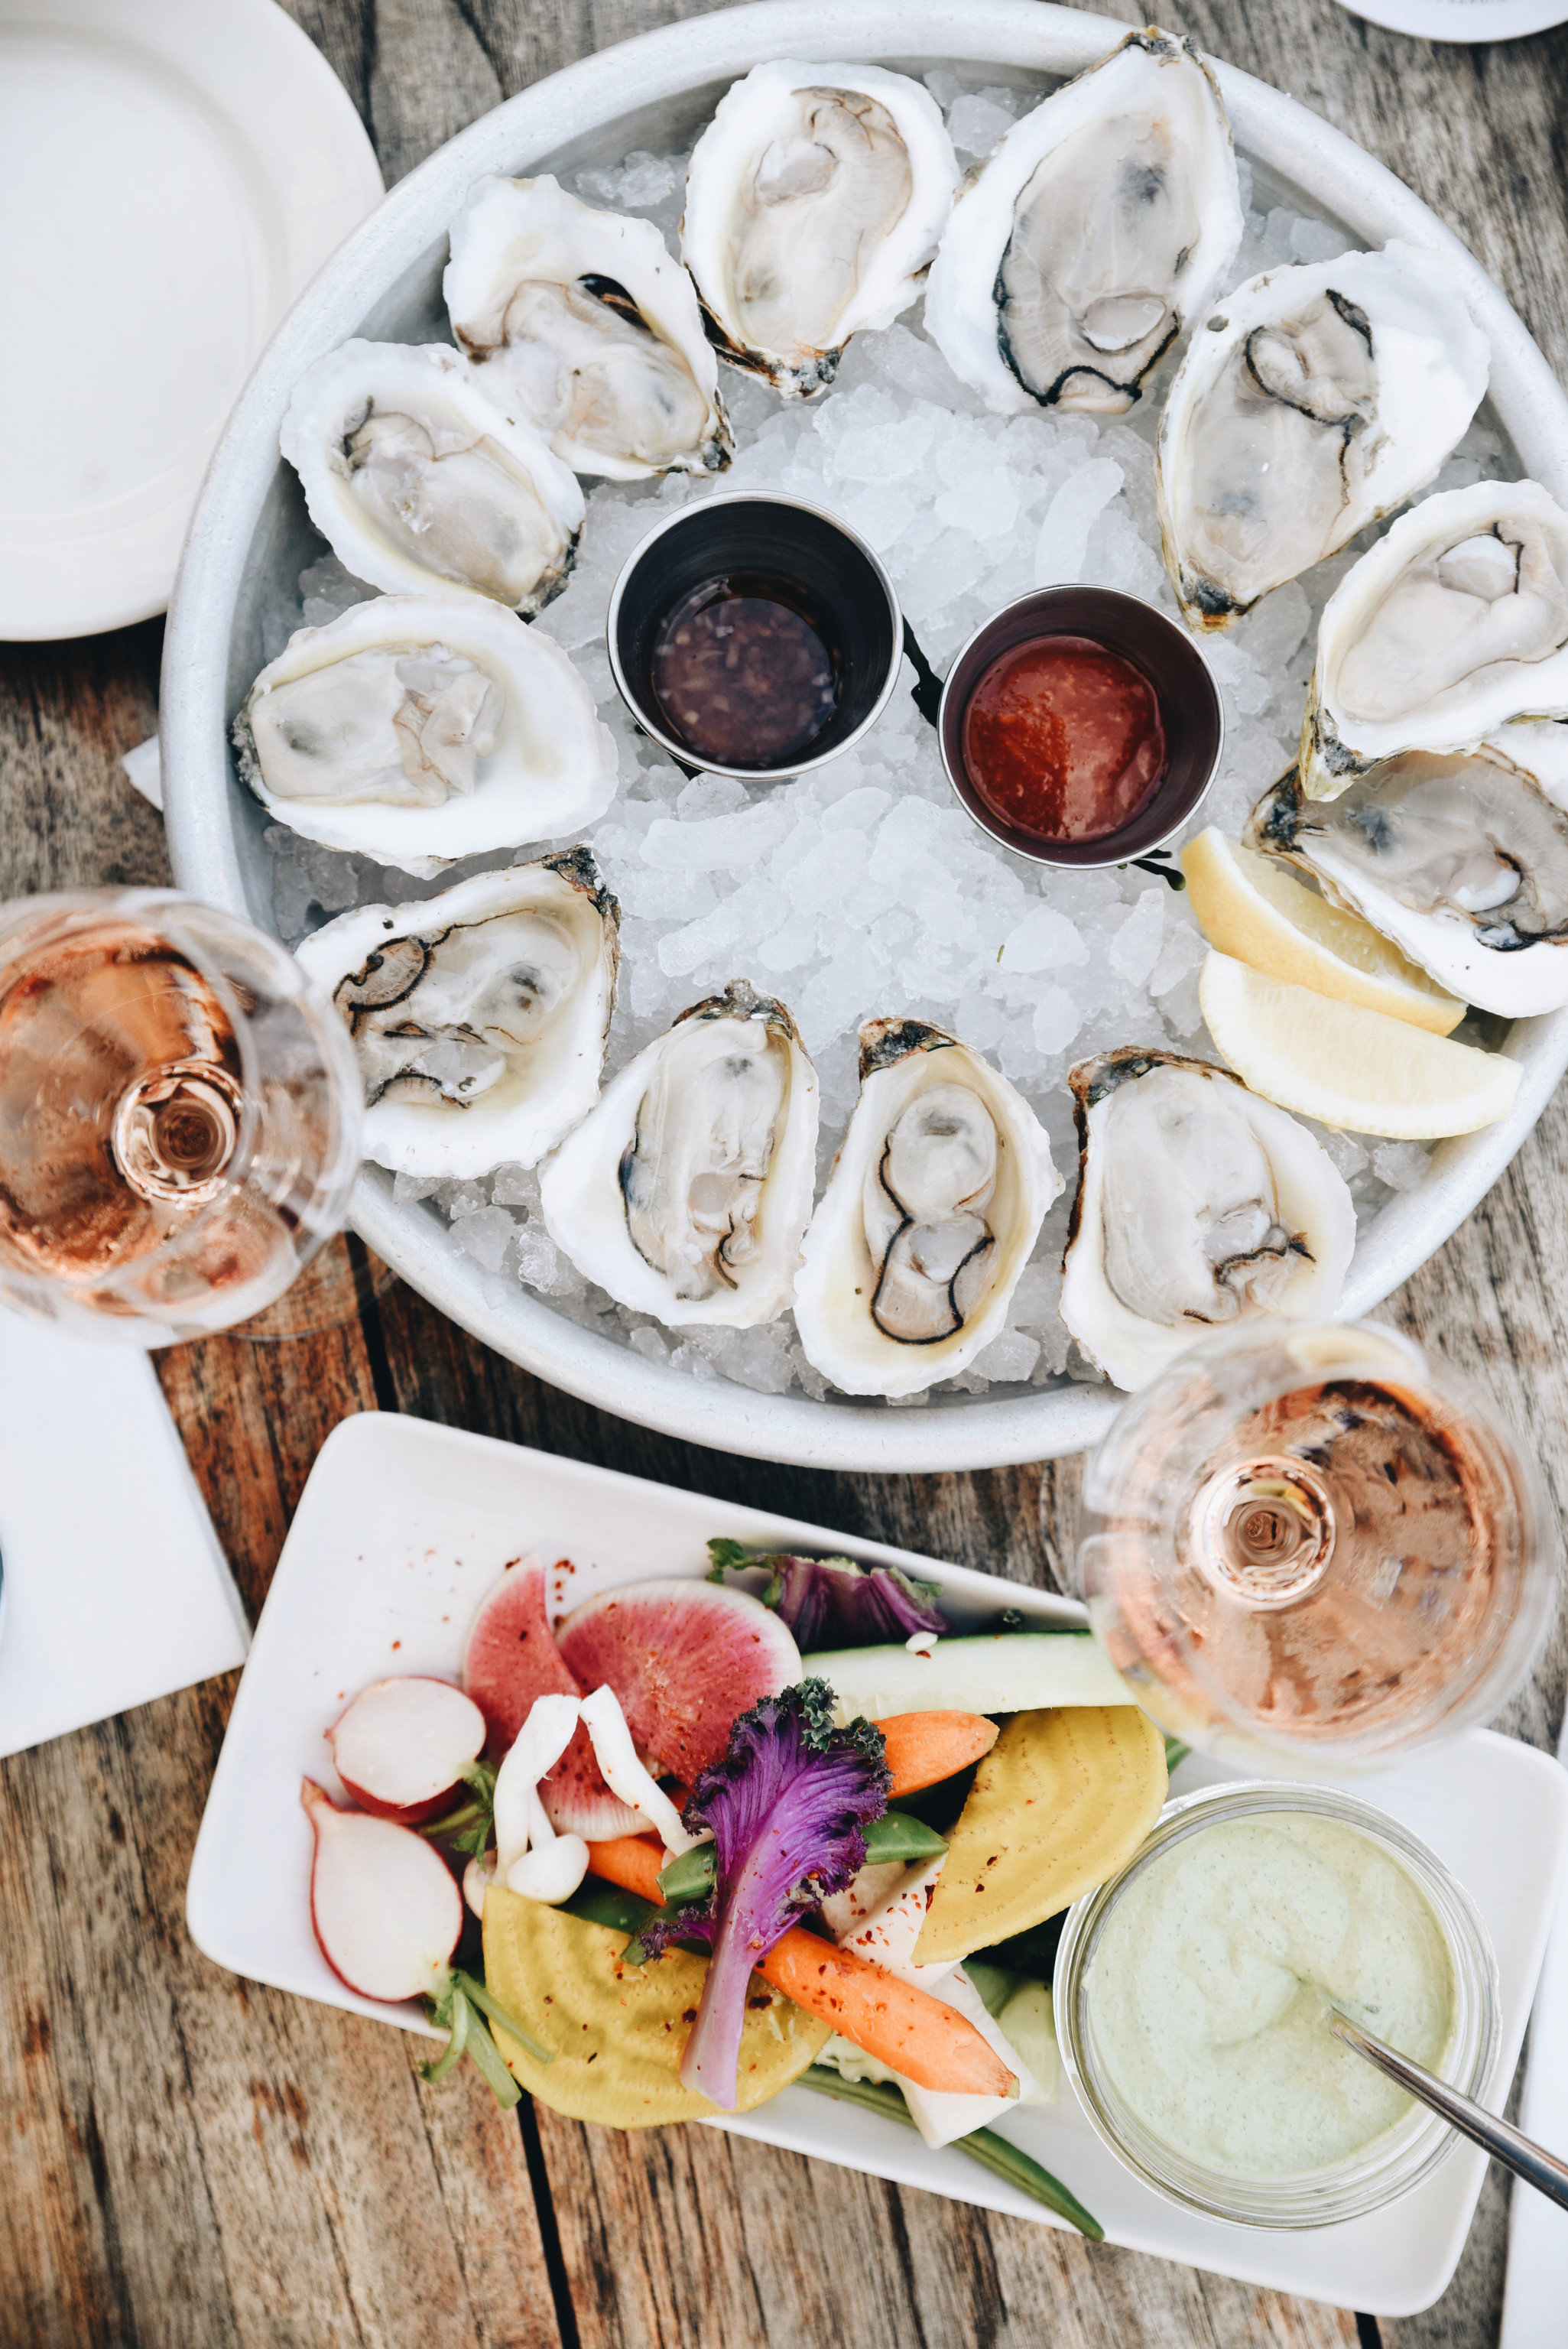 Boutique Hotels Health + Wellness Hotels Trip Ideas food oyster plate Seafood clams oysters mussels and scallops animal source foods brunch dish meal platter clam recipe breakfast different variety